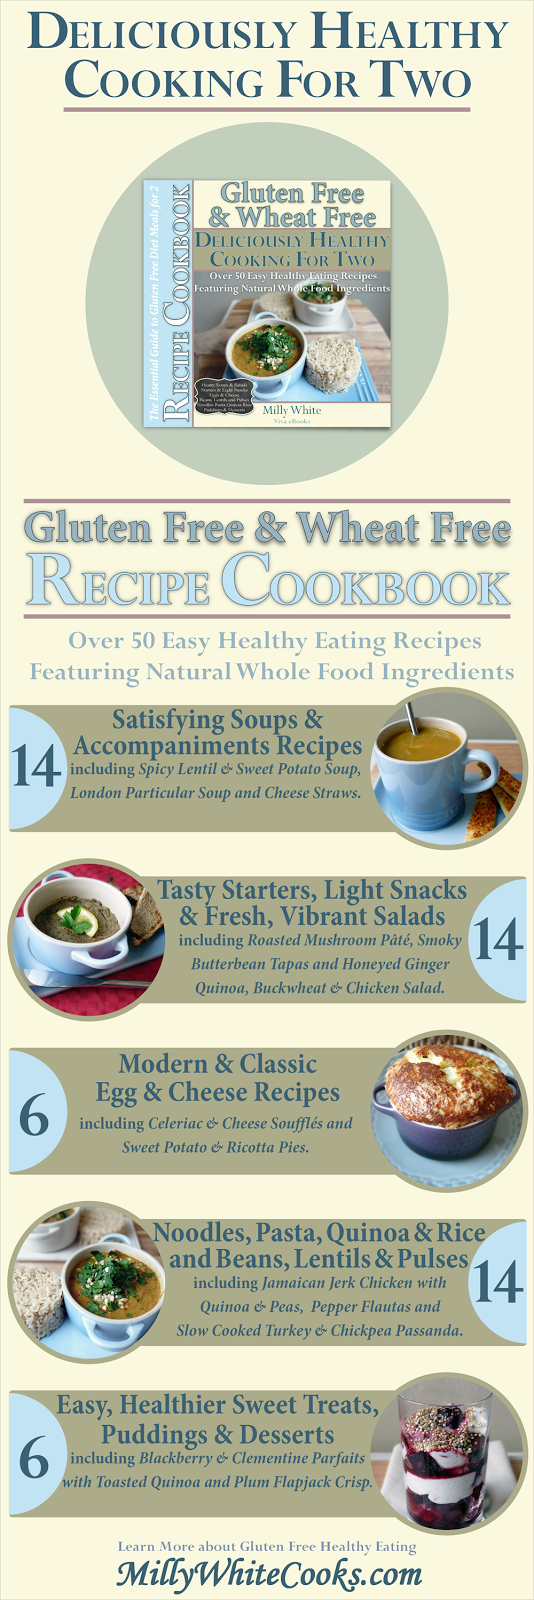 Gluten Free Deliciously Healthy Cooking For Two Recipe Cookbook